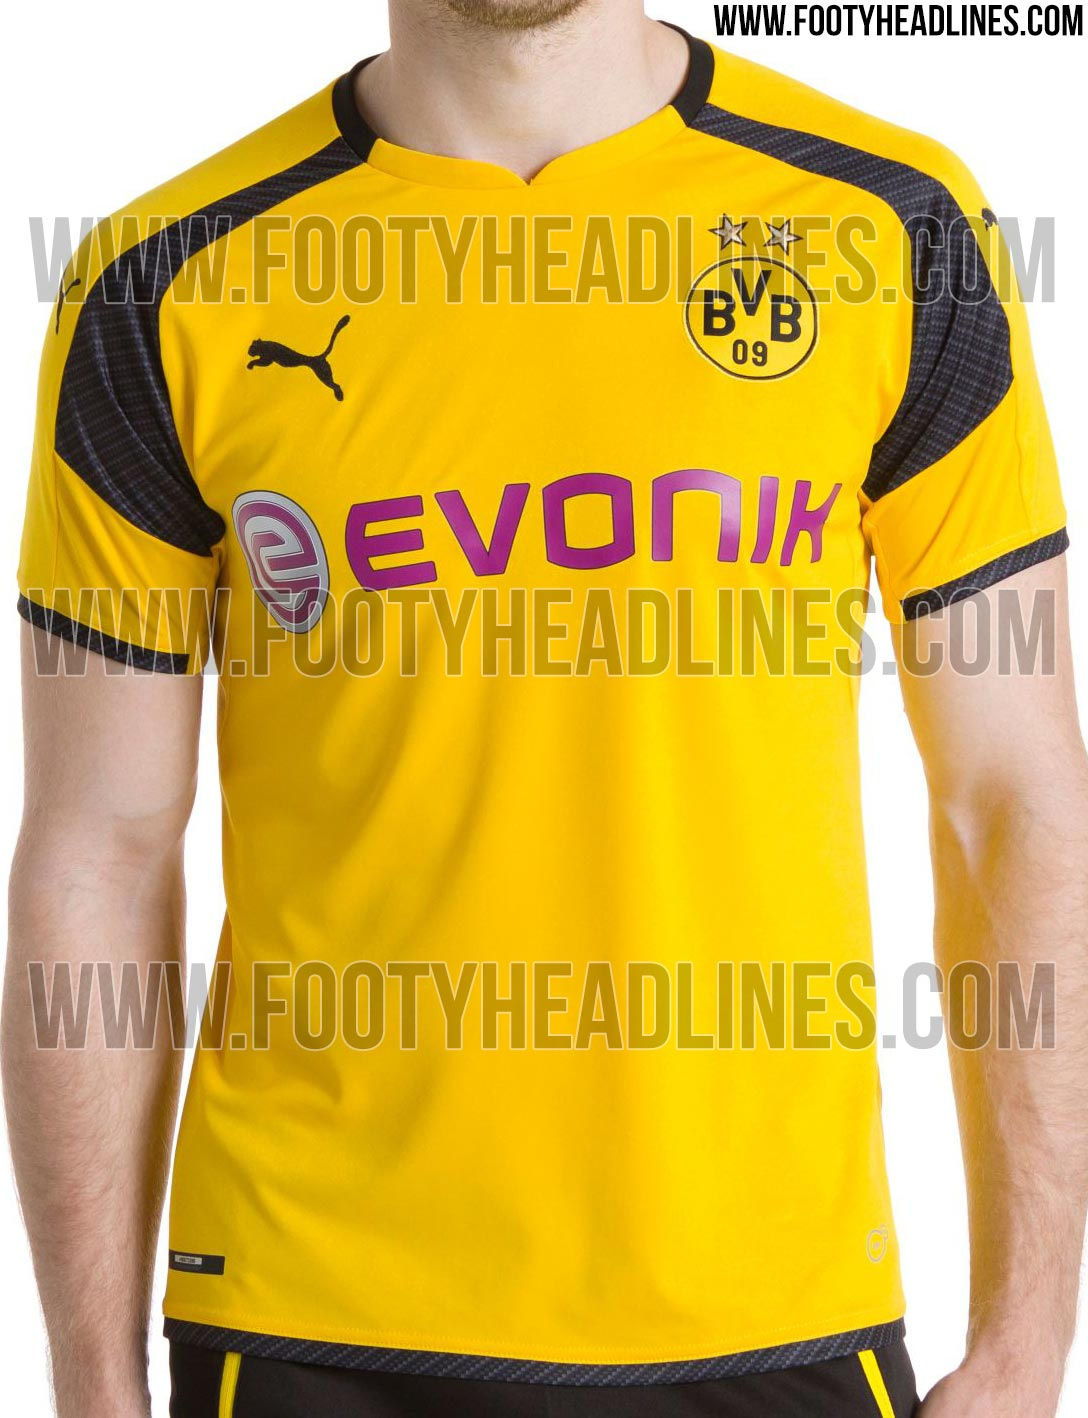 borussia dortmund 16 17 champions league trikot geleakt. Black Bedroom Furniture Sets. Home Design Ideas